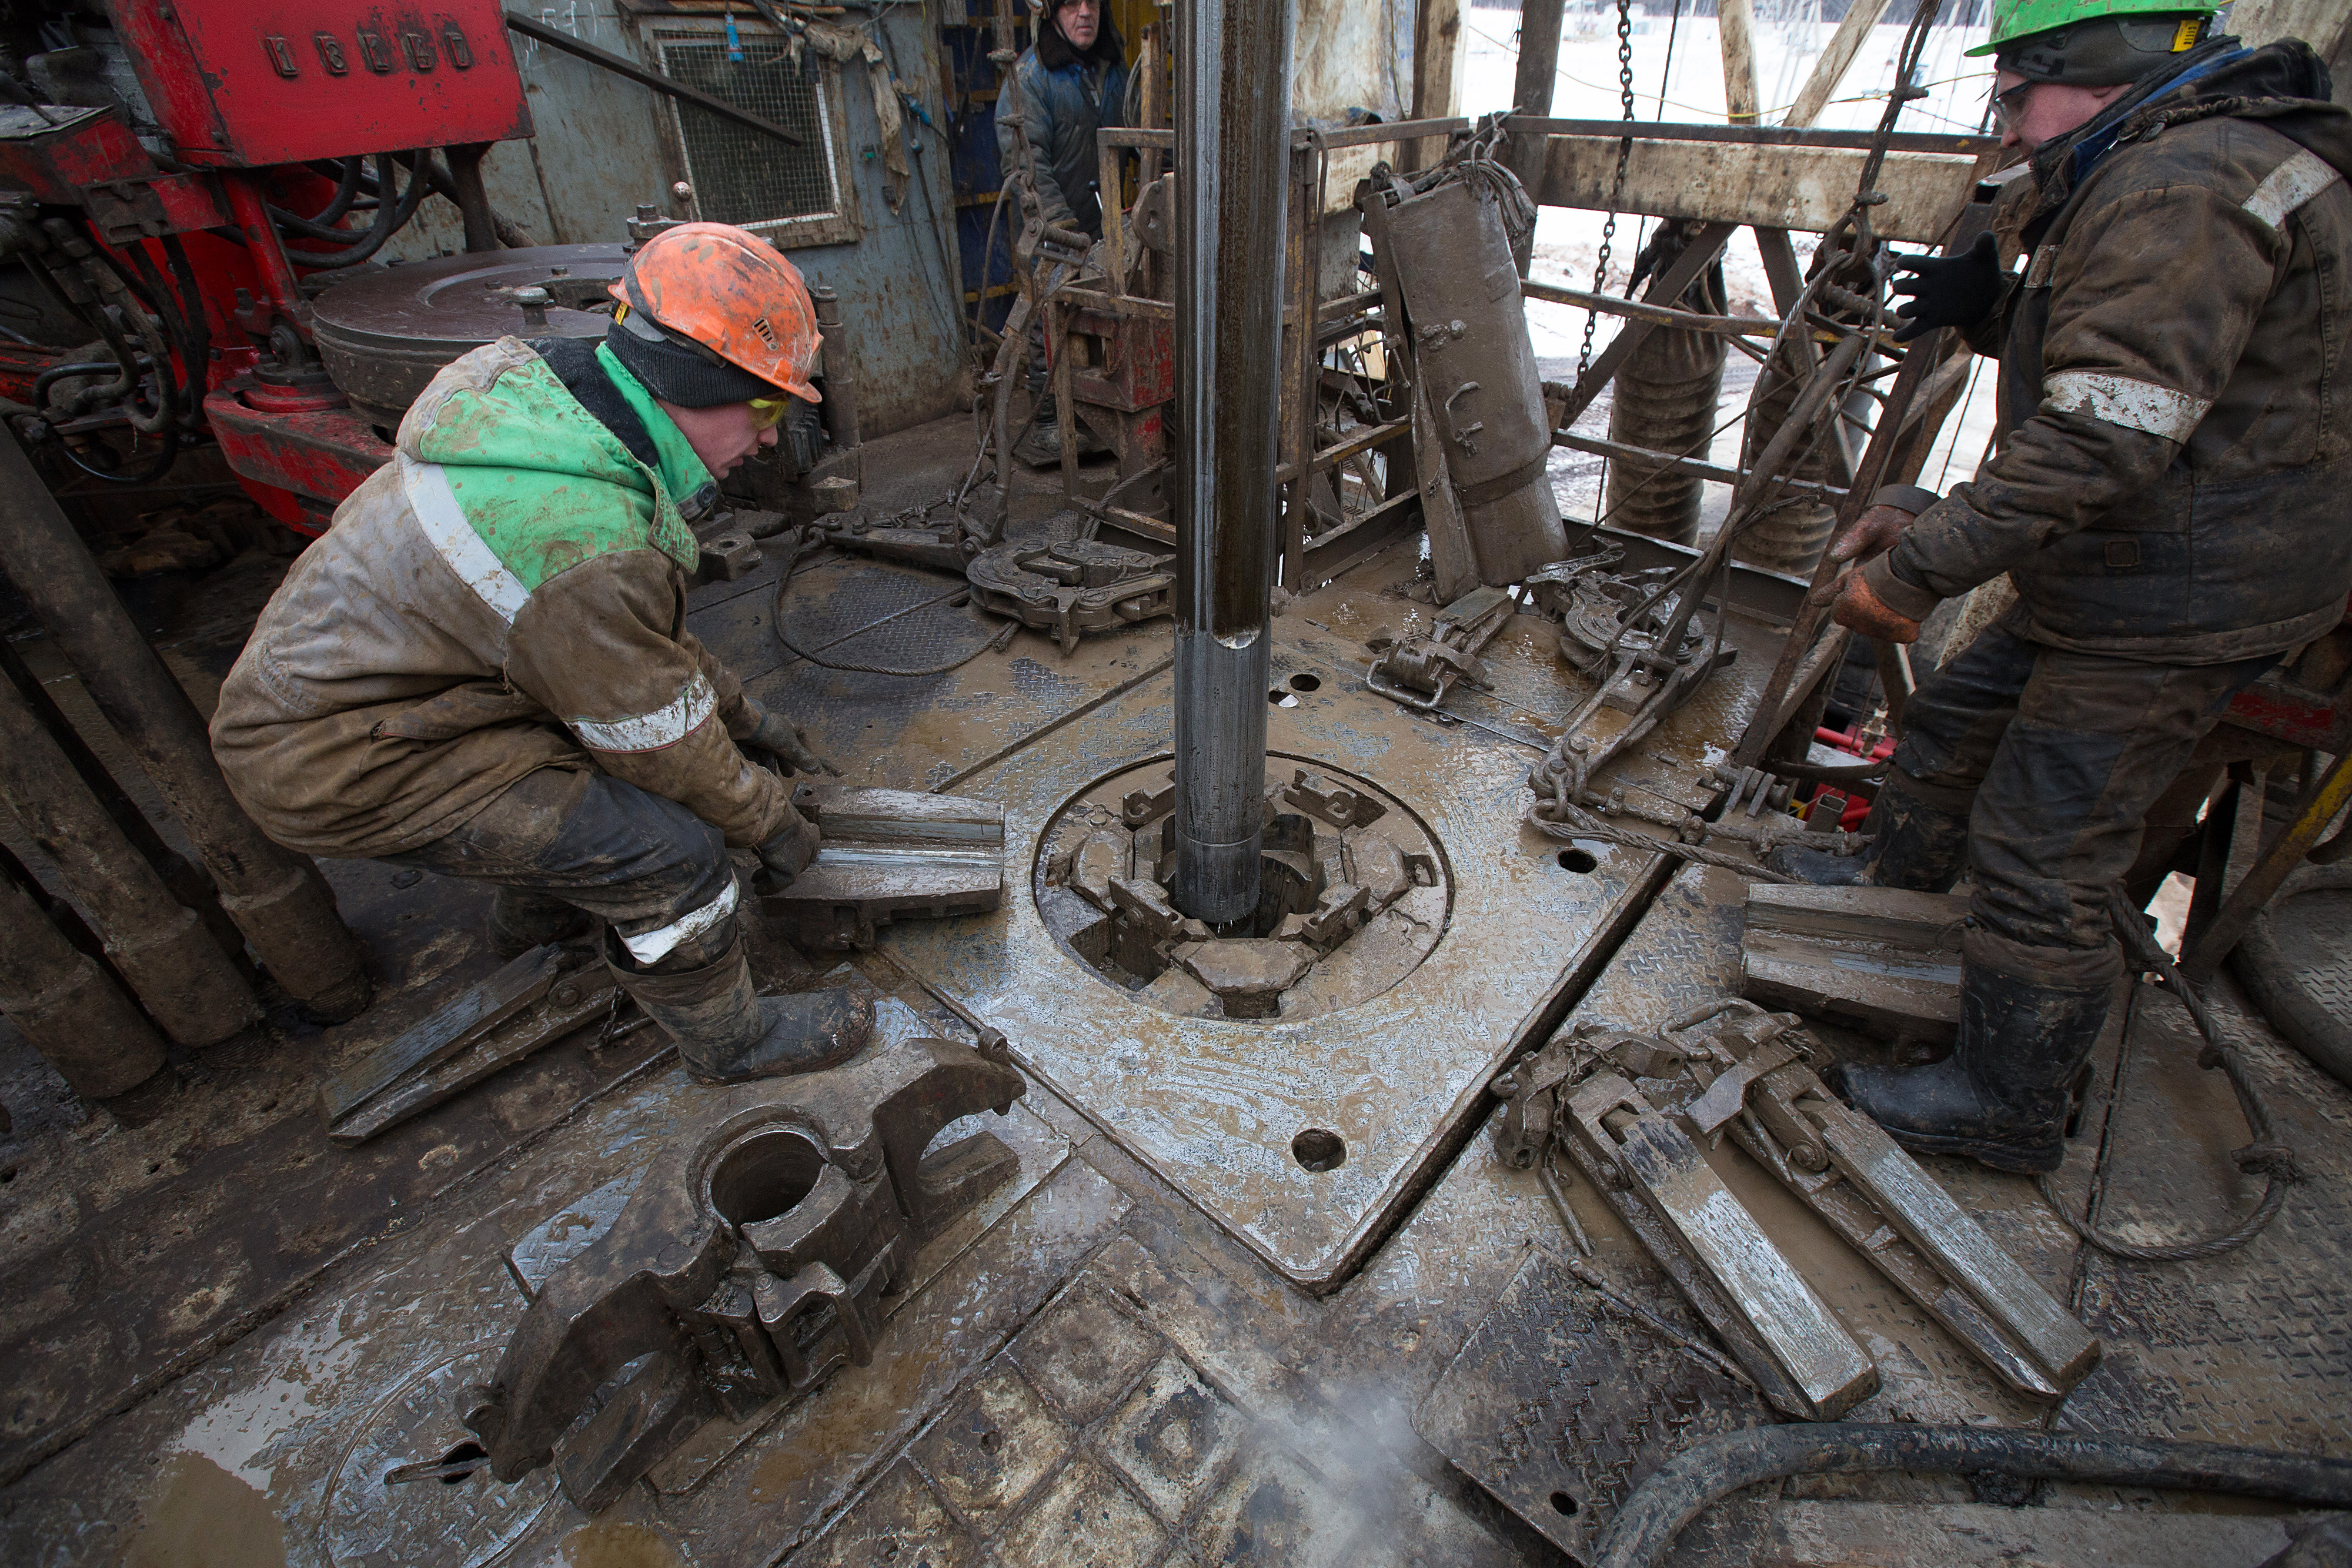 Oil workers adjust a pipe section at the turntable on an oil derrick during drilling operations by Targin JSC, a unit of Sistema JSFC, in an oilfield operated by Bashneft PAO in the village of Otrada, 150kms from Ufa, Russia, on Saturday, March 5, 2016.